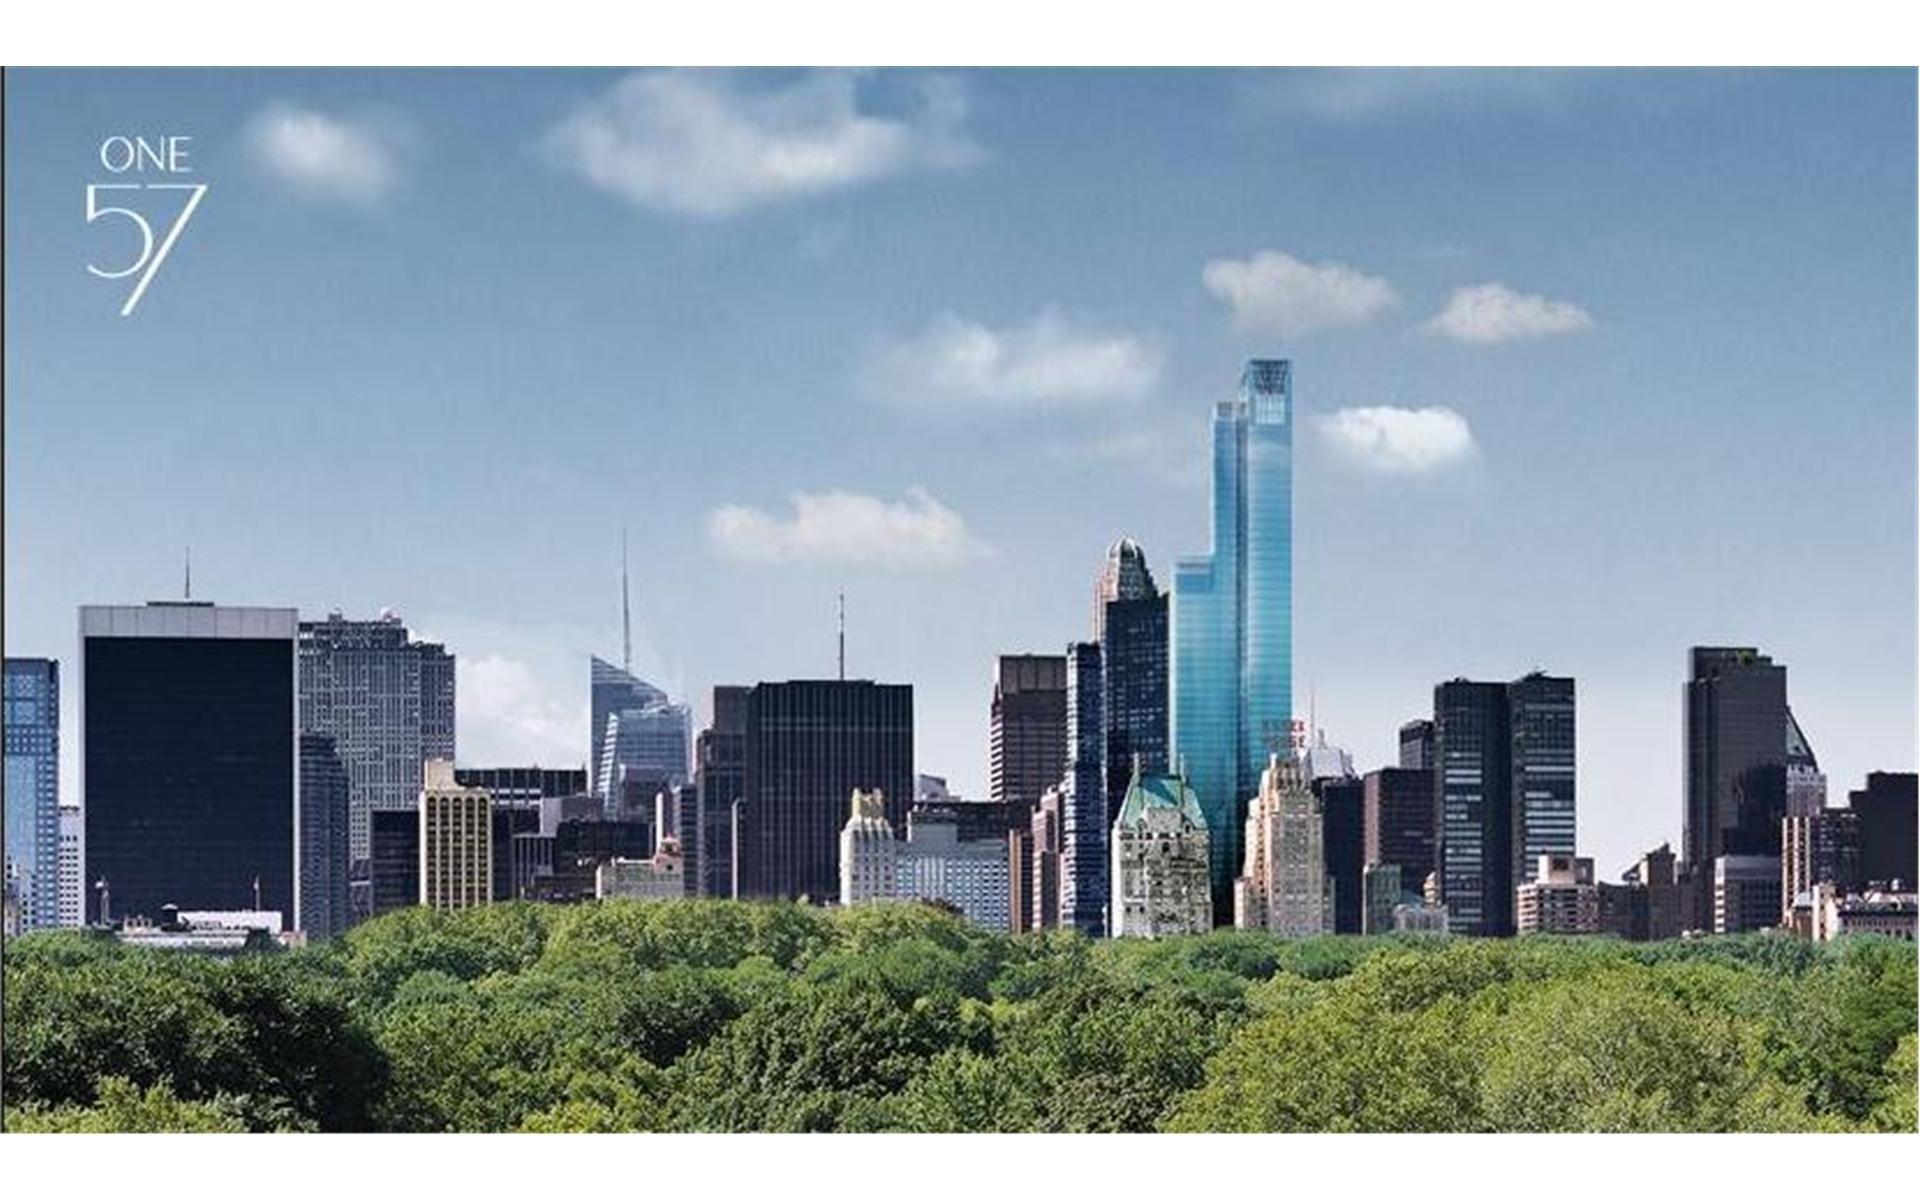 11. Condominiums for Sale at One57, 157 West 57th St, 39B Midtown West, New York, NY 10019